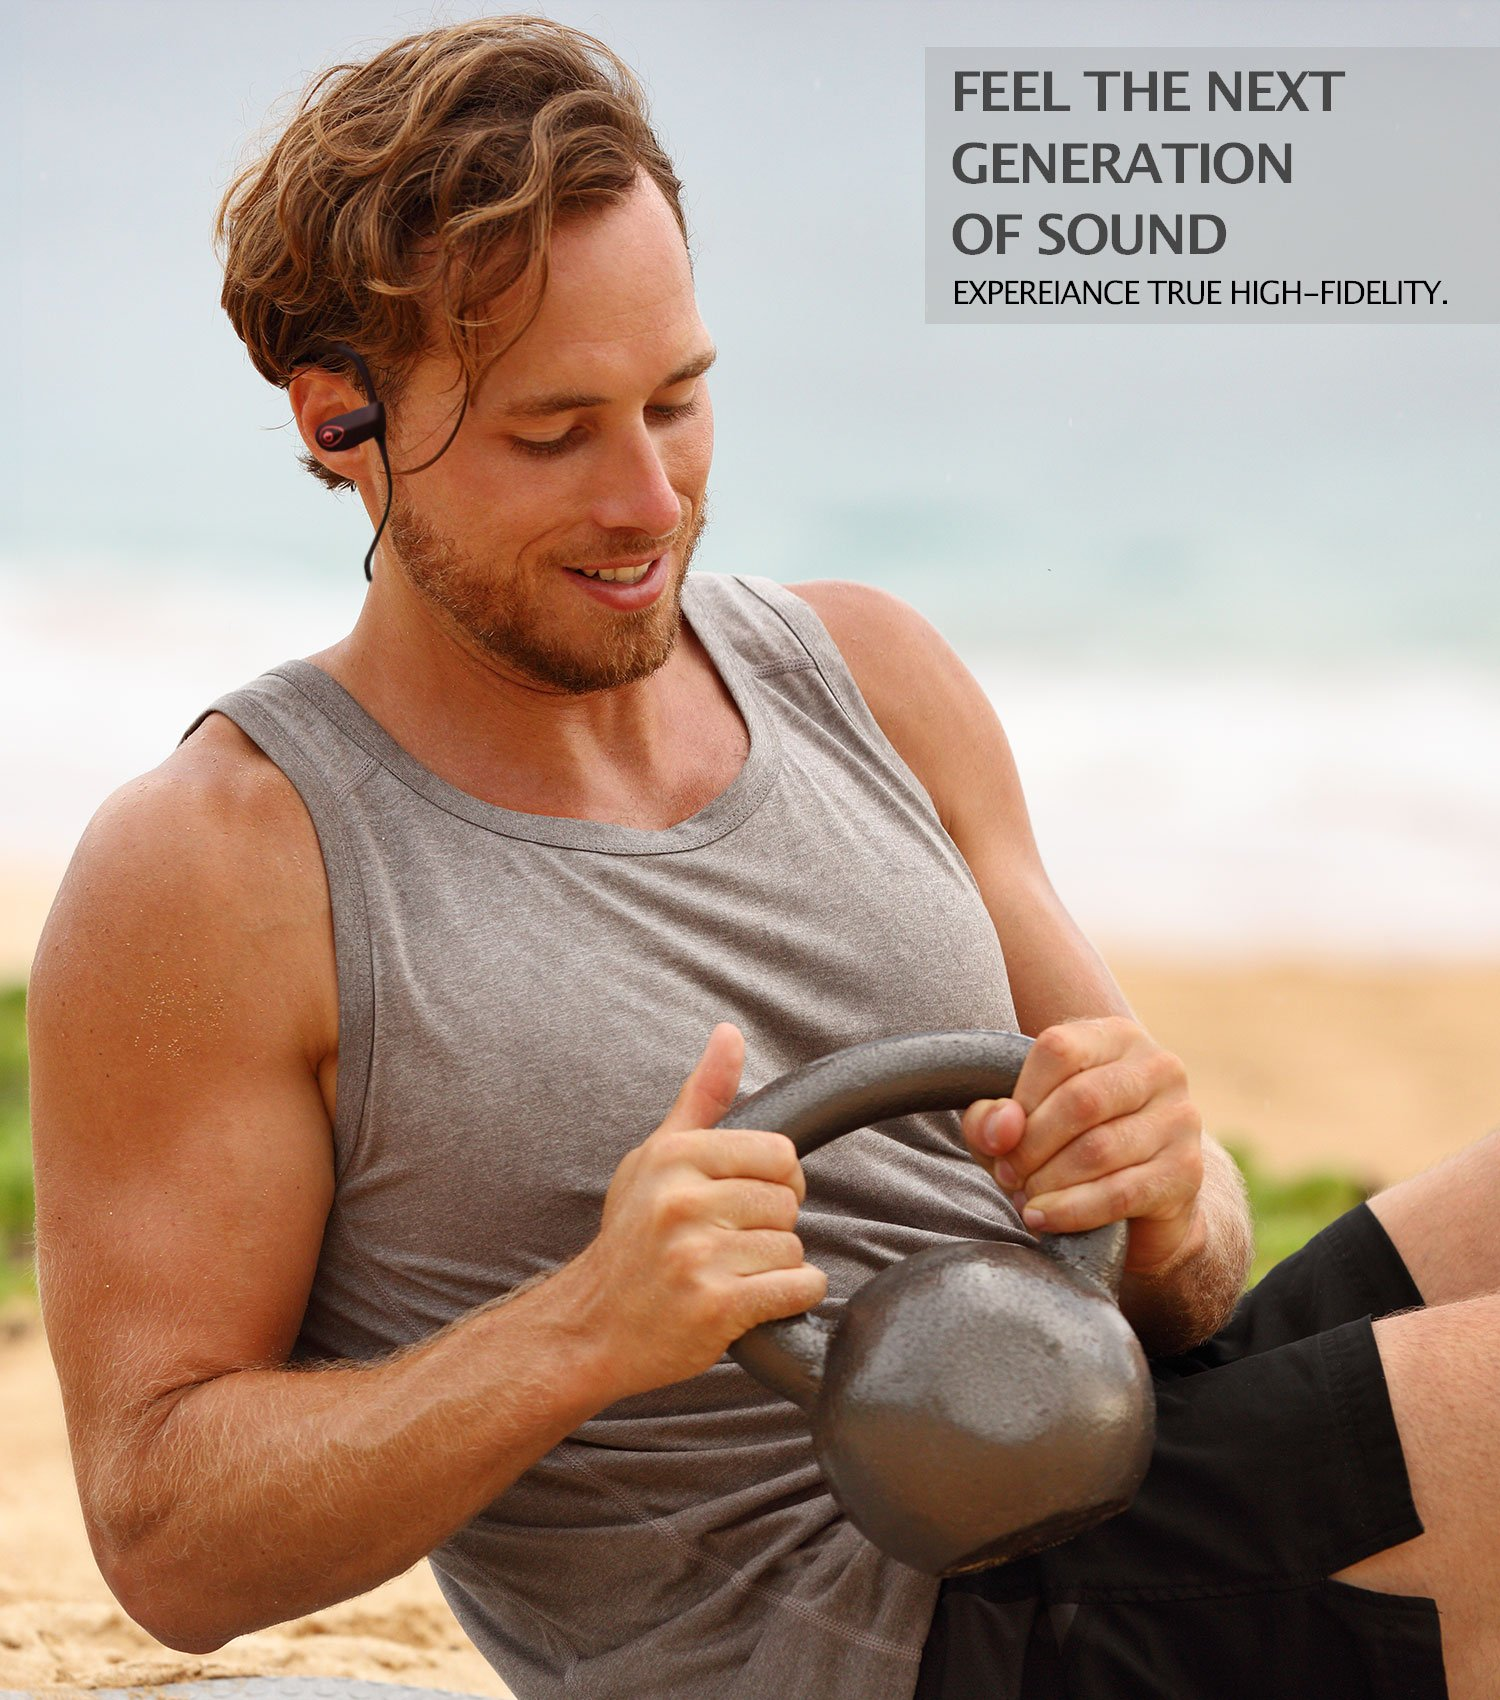 ONE DAY SALE!! - MX10 Bluetooth Iphone Headphones - Ear Buds Wireless Headphones - Designed For Running and Sport Workouts - Built-in Microphone With Noise Cancellation - IPX7 WaterProof by MultiTed (Image #5)